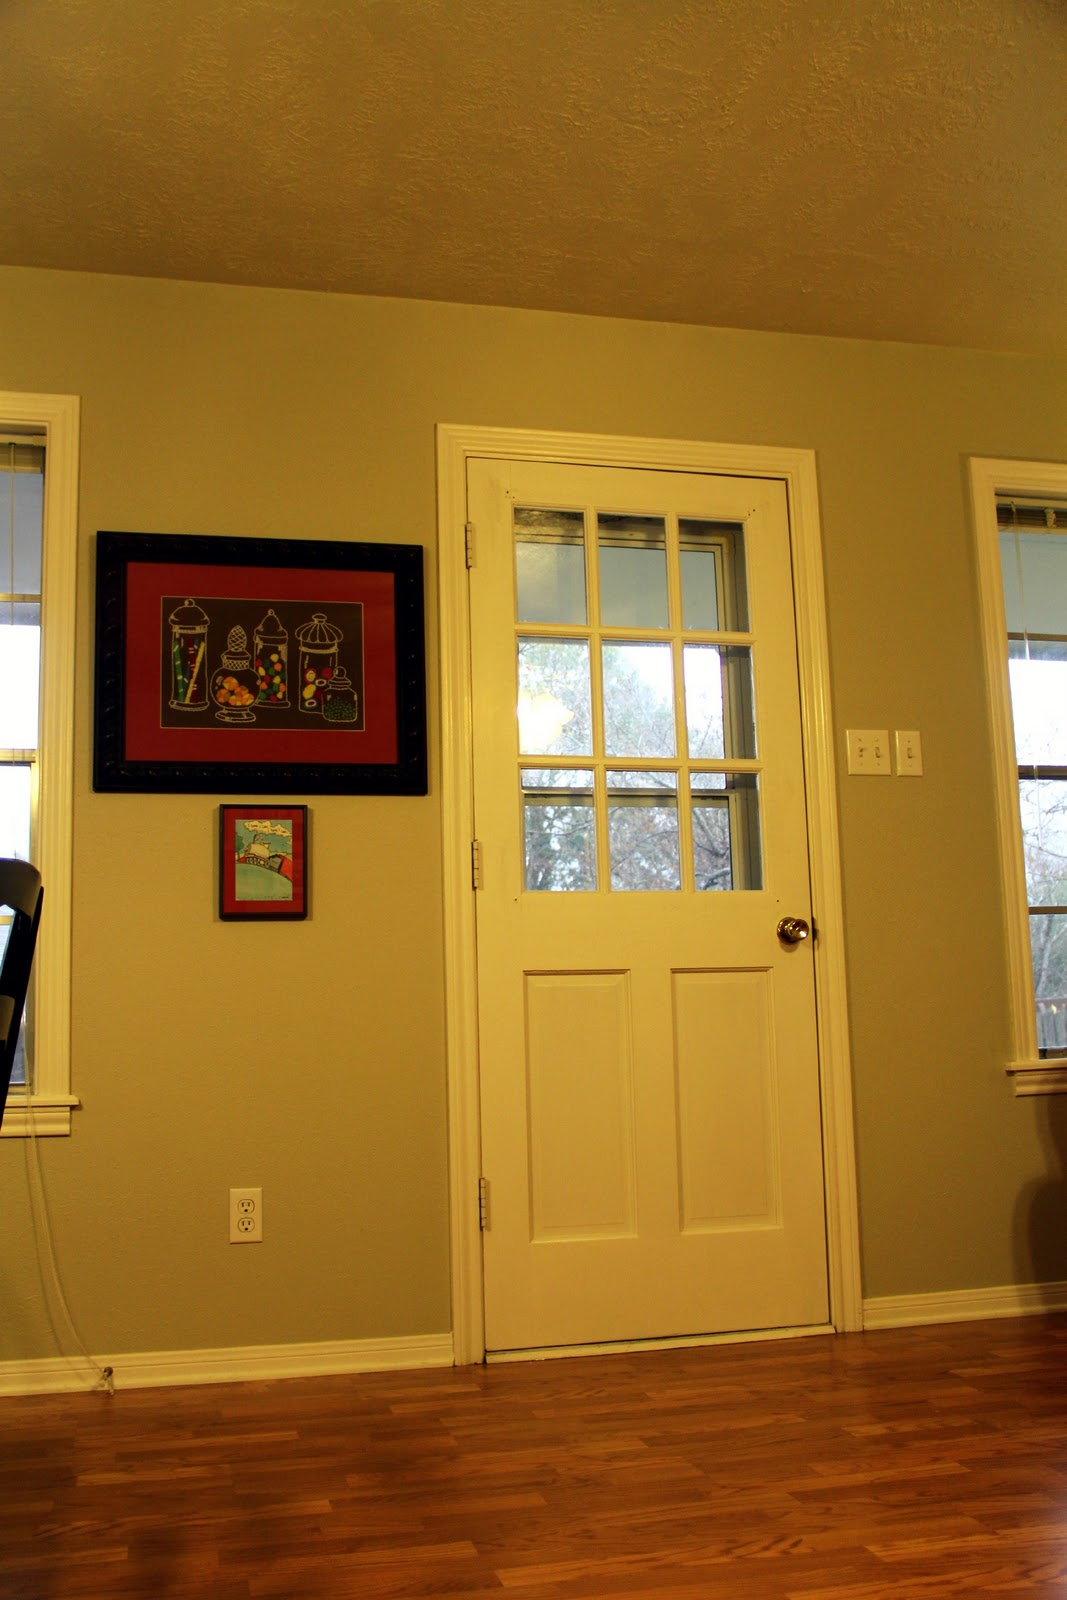 Imperfect Treasures: New Wall Art in the Family Room